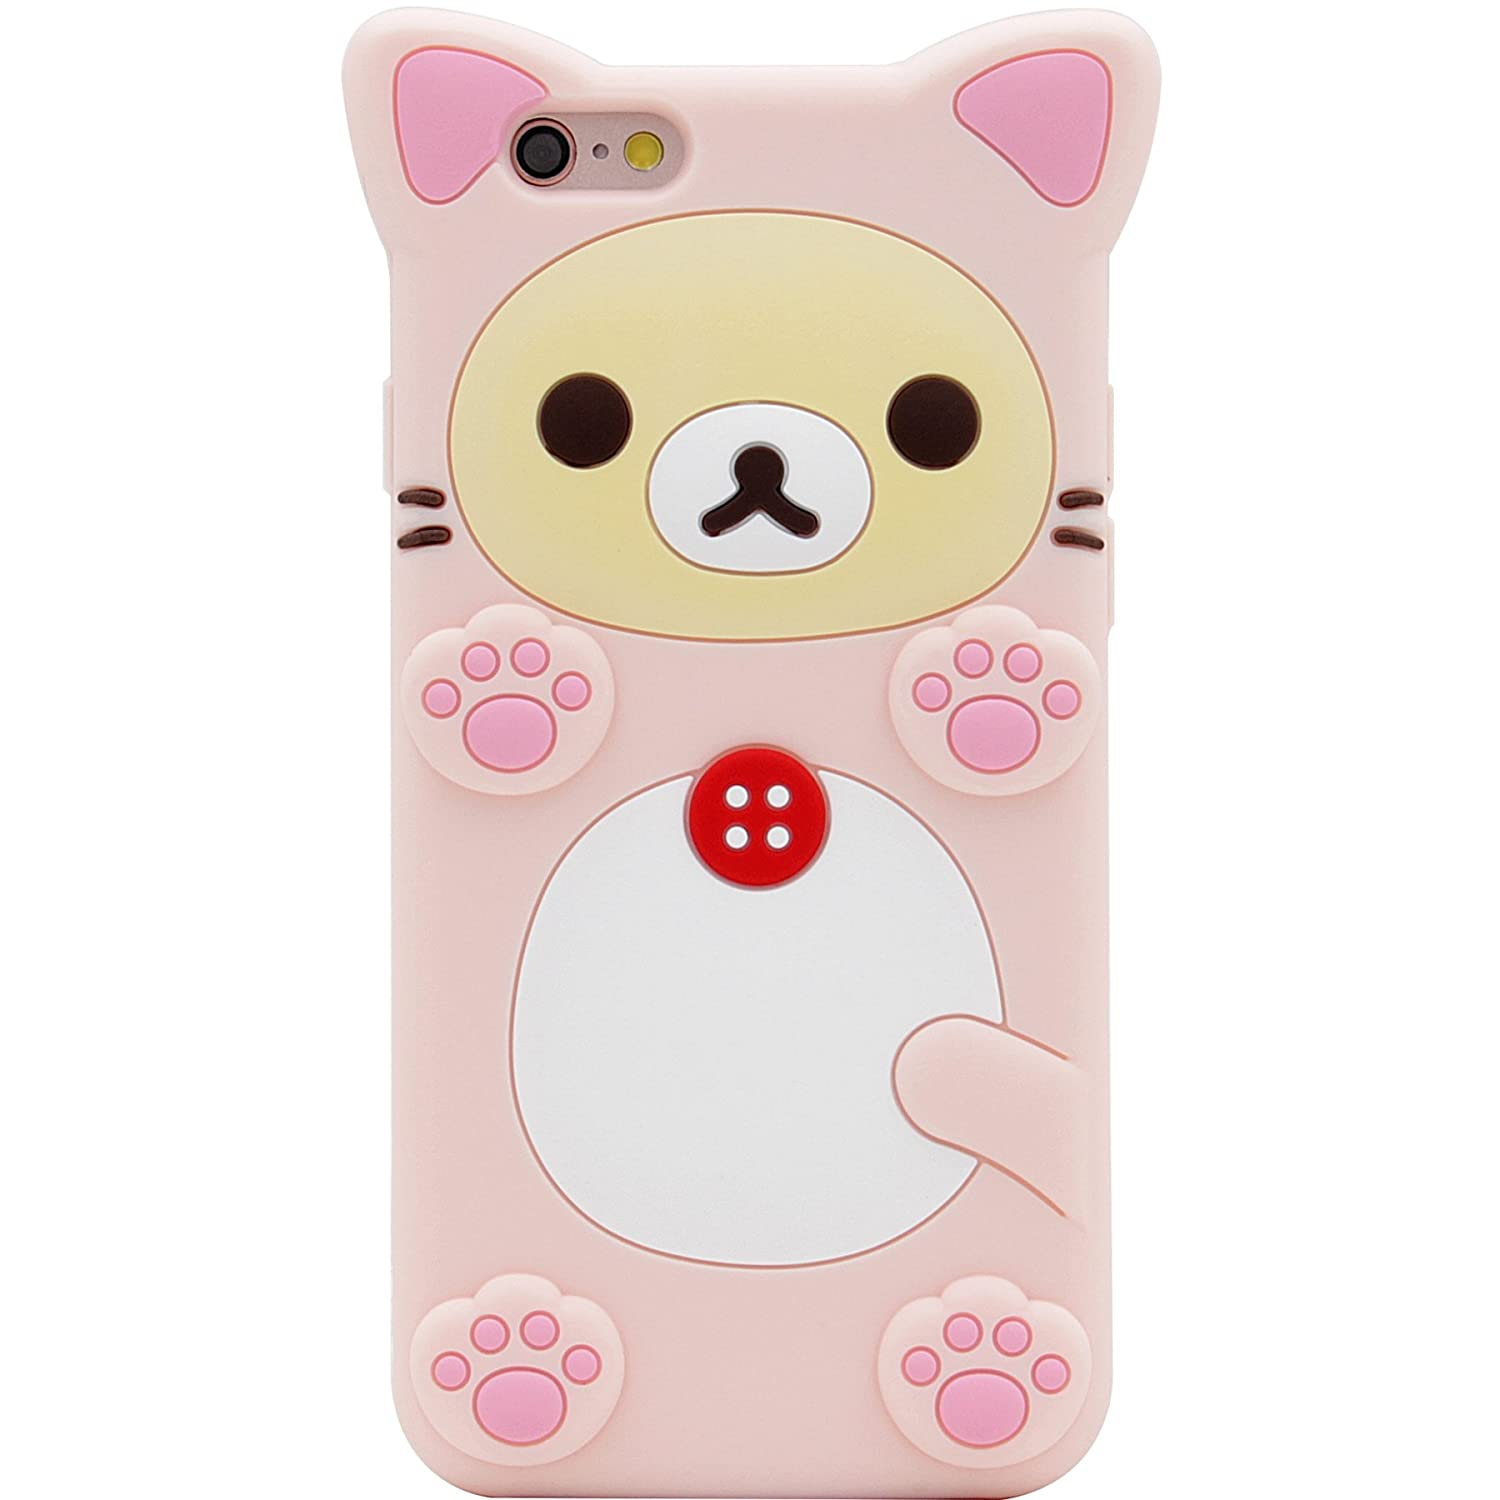 Mc Fashion 3 D Japanese Cartoon Rinkadoll Super Cute Soft Silicone Case Cover For Apple I Phone 6/6 S   Rilakkuma by Mc Fashion